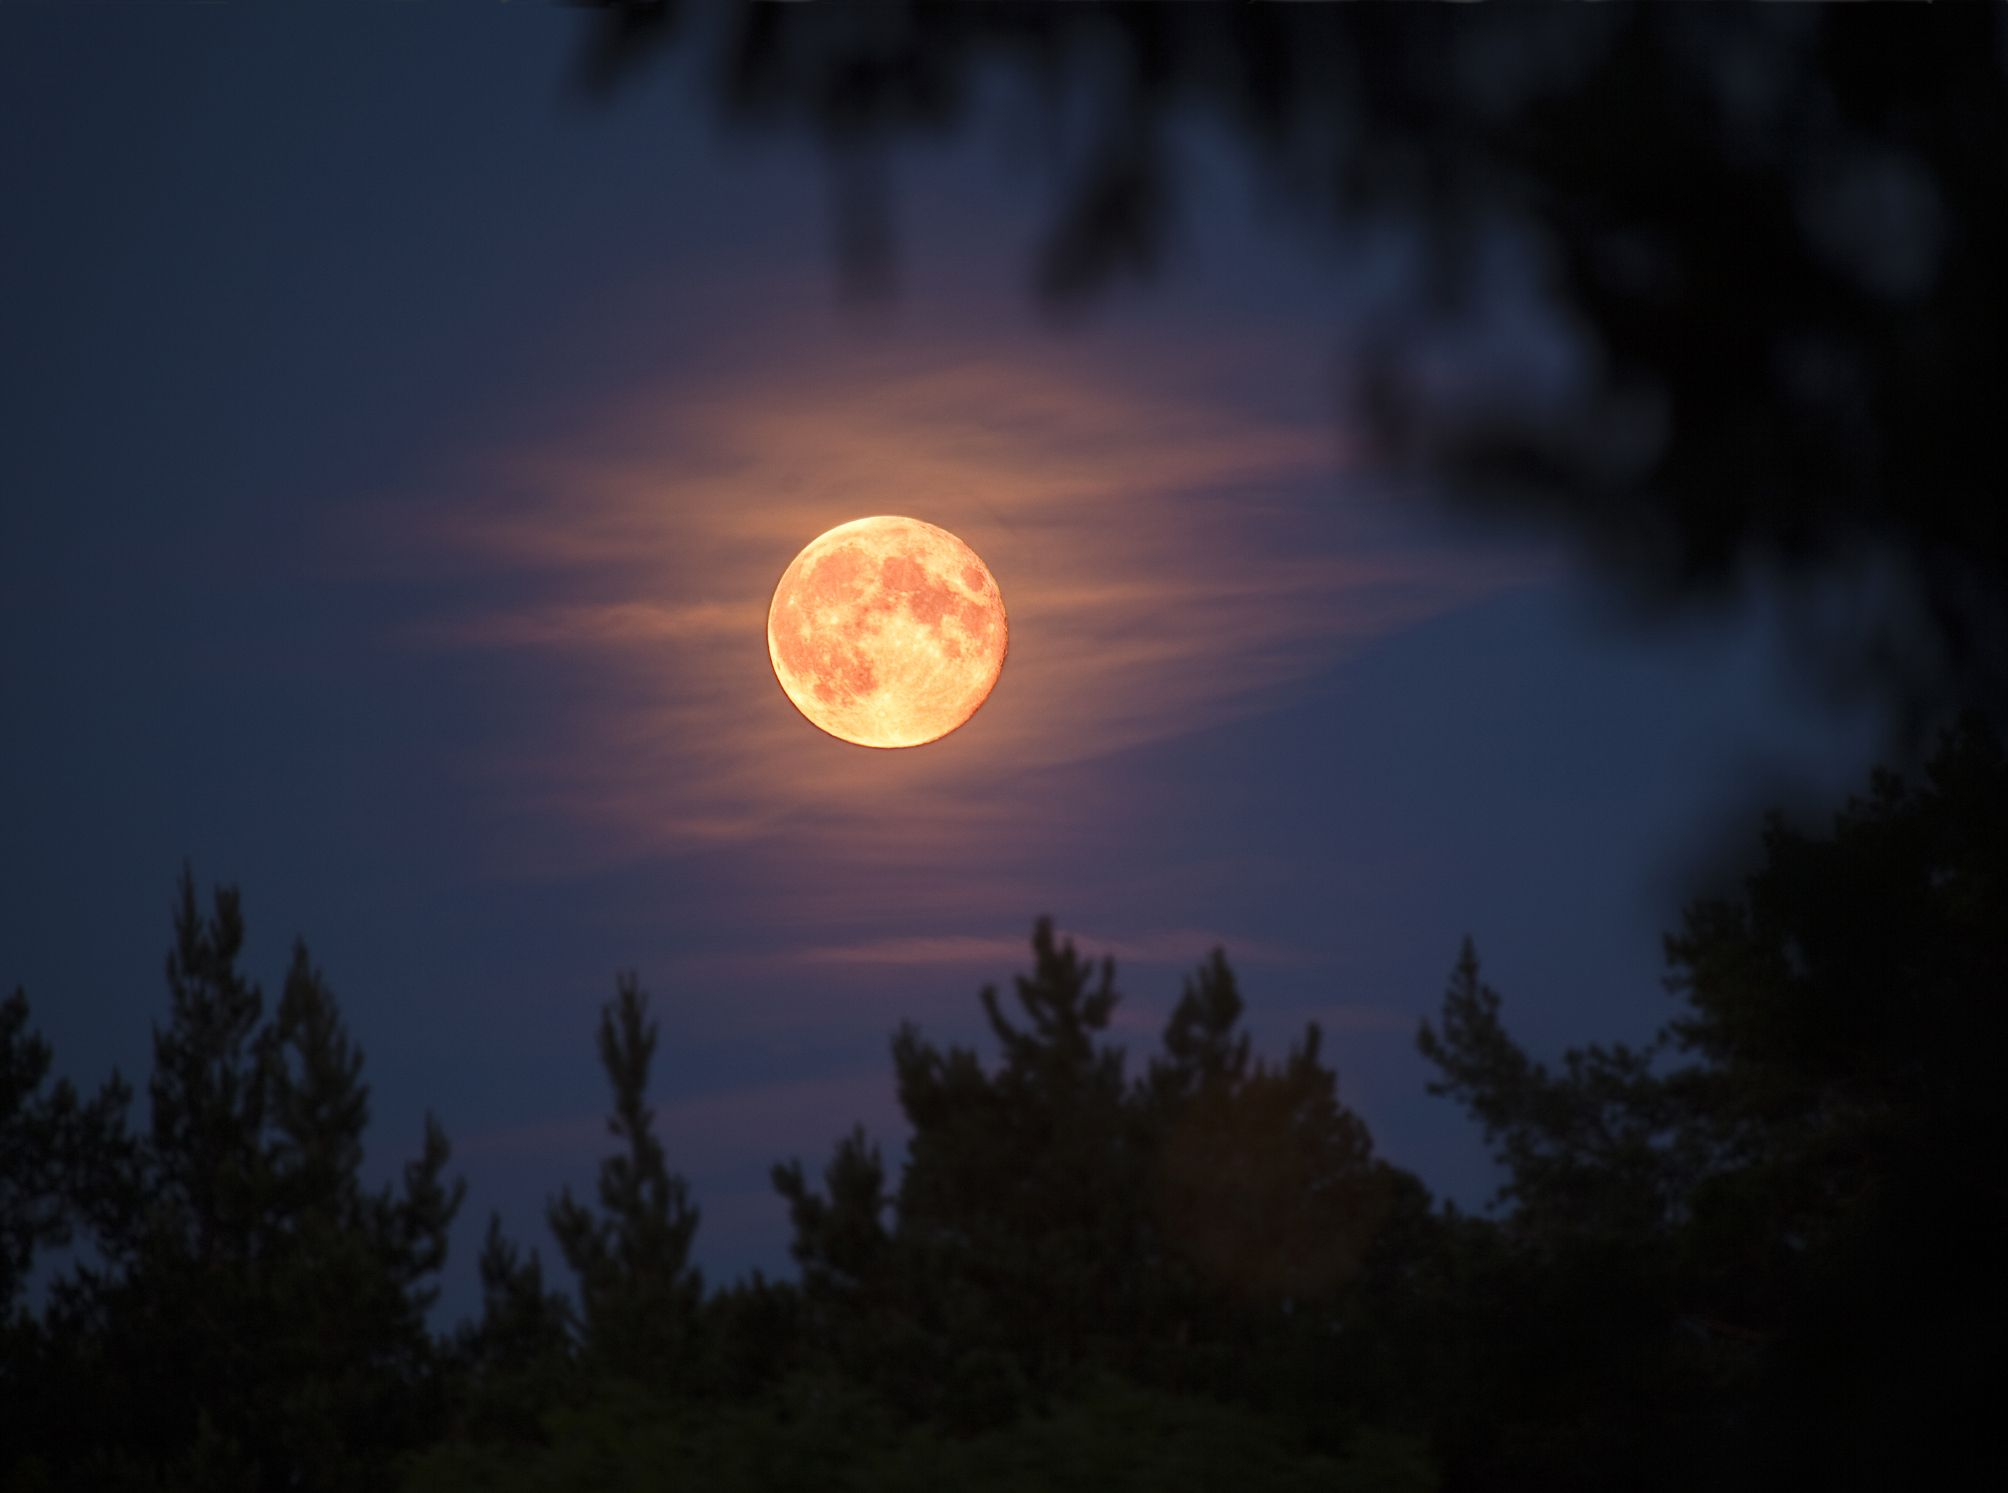 April's 'pink' supermoon will be the biggest and brightest of 2020